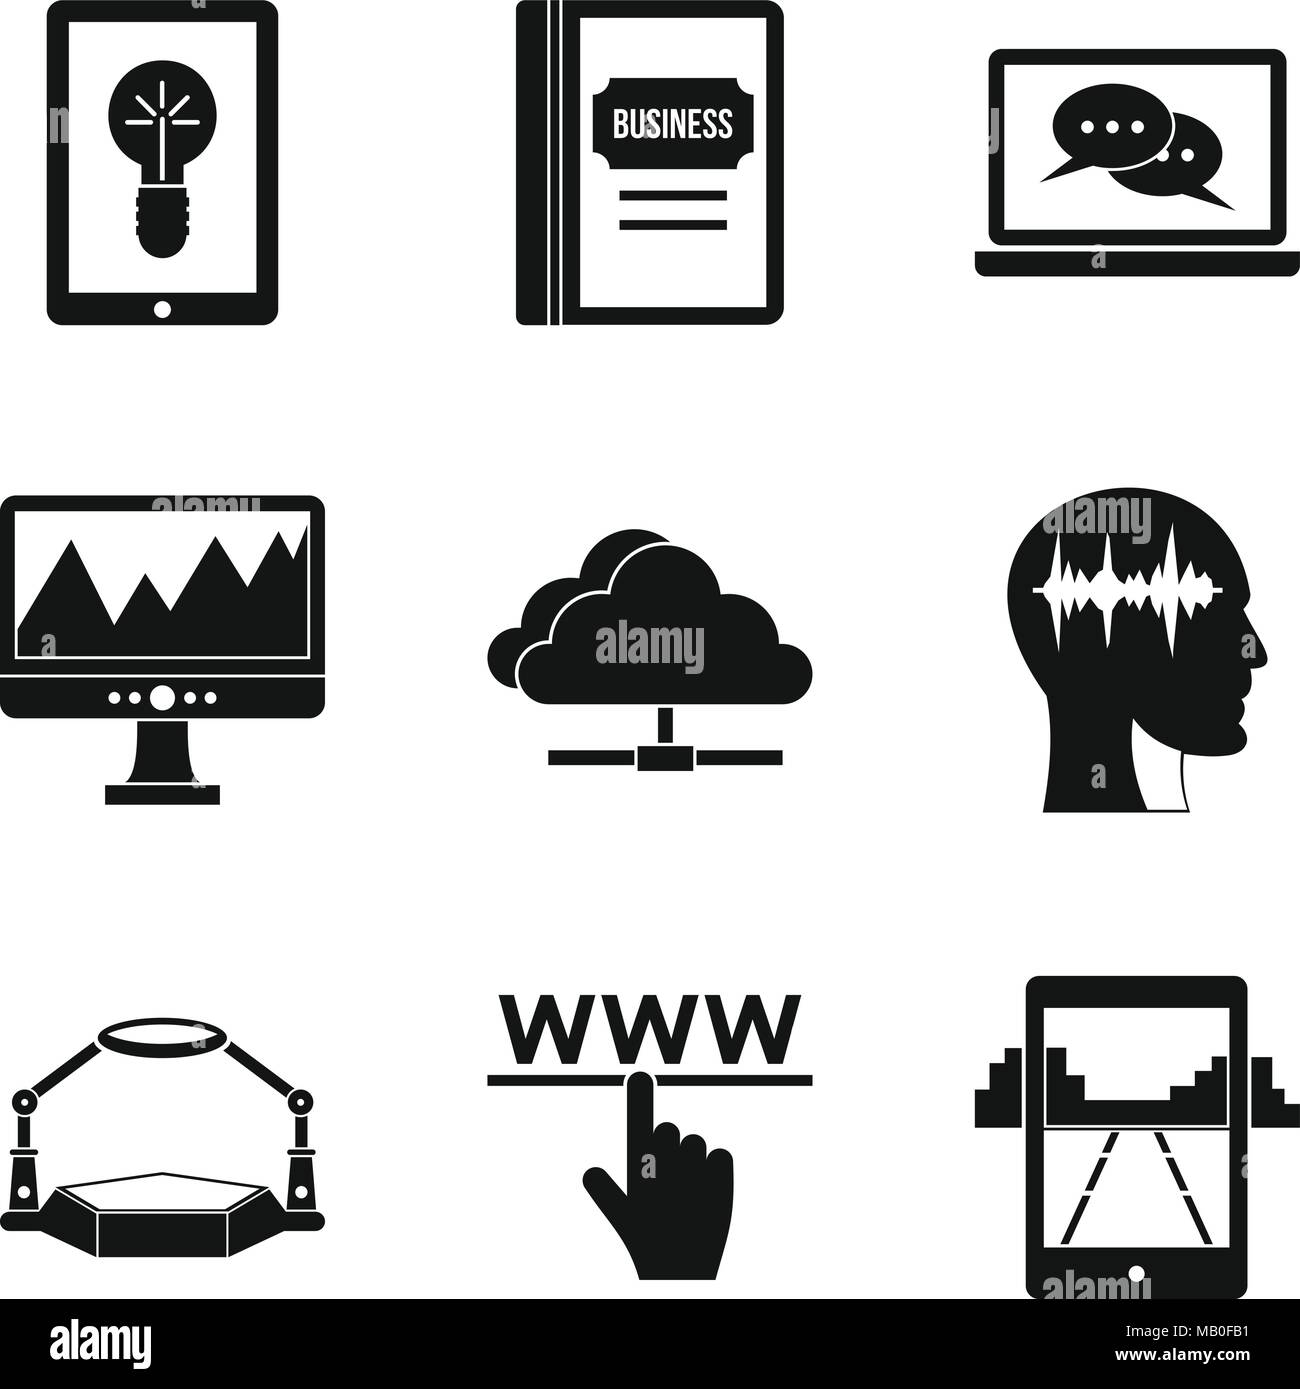 Arcade icons set, simple style - Stock Vector